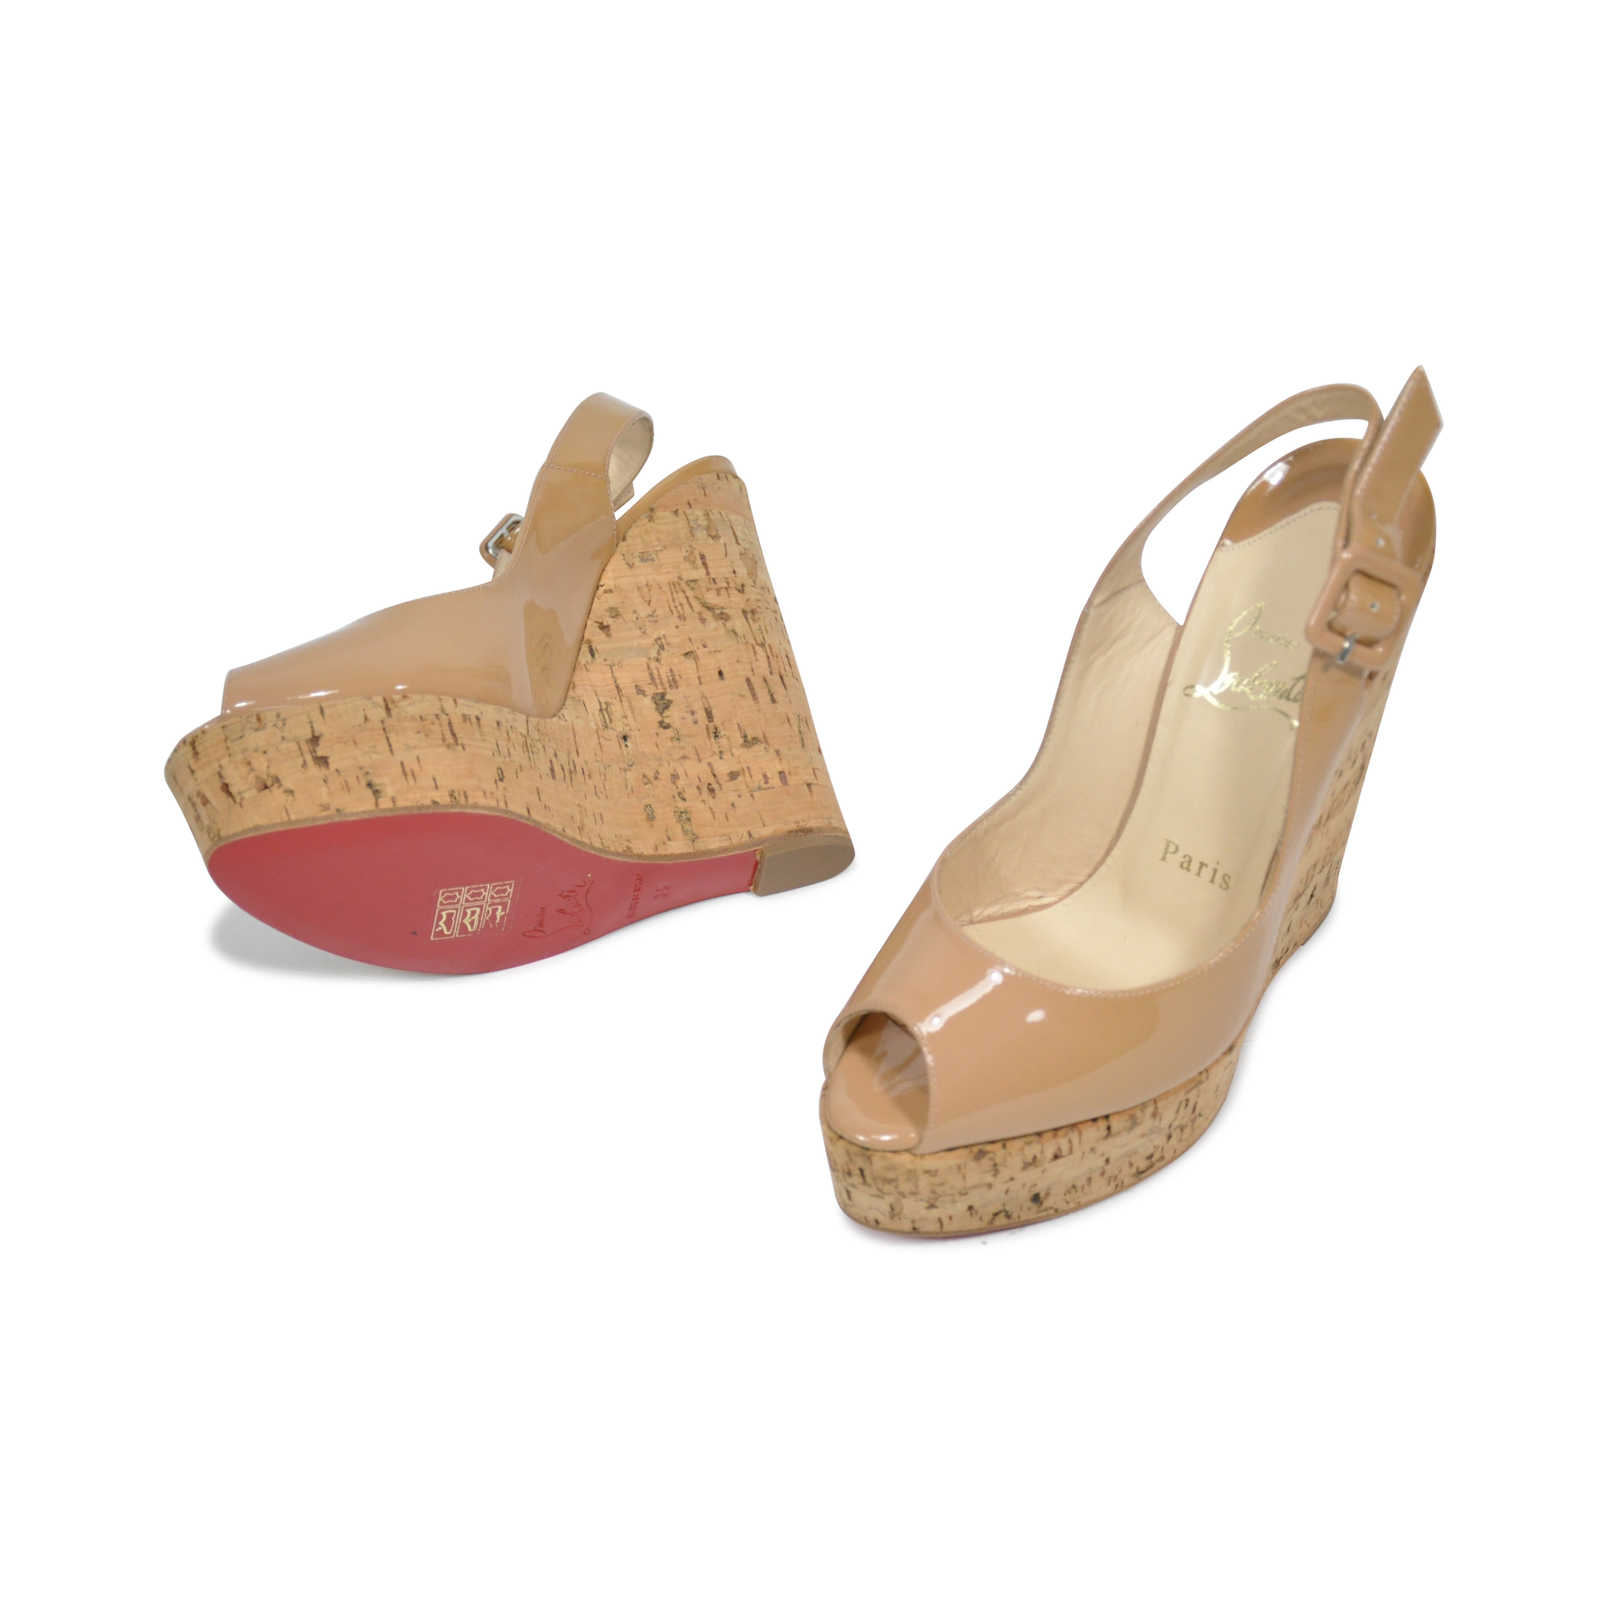 d9a6f8d7980a ... Authentic Second Hand Christian Louboutin Une Plume Wedges  (PSS-209-00003) ...